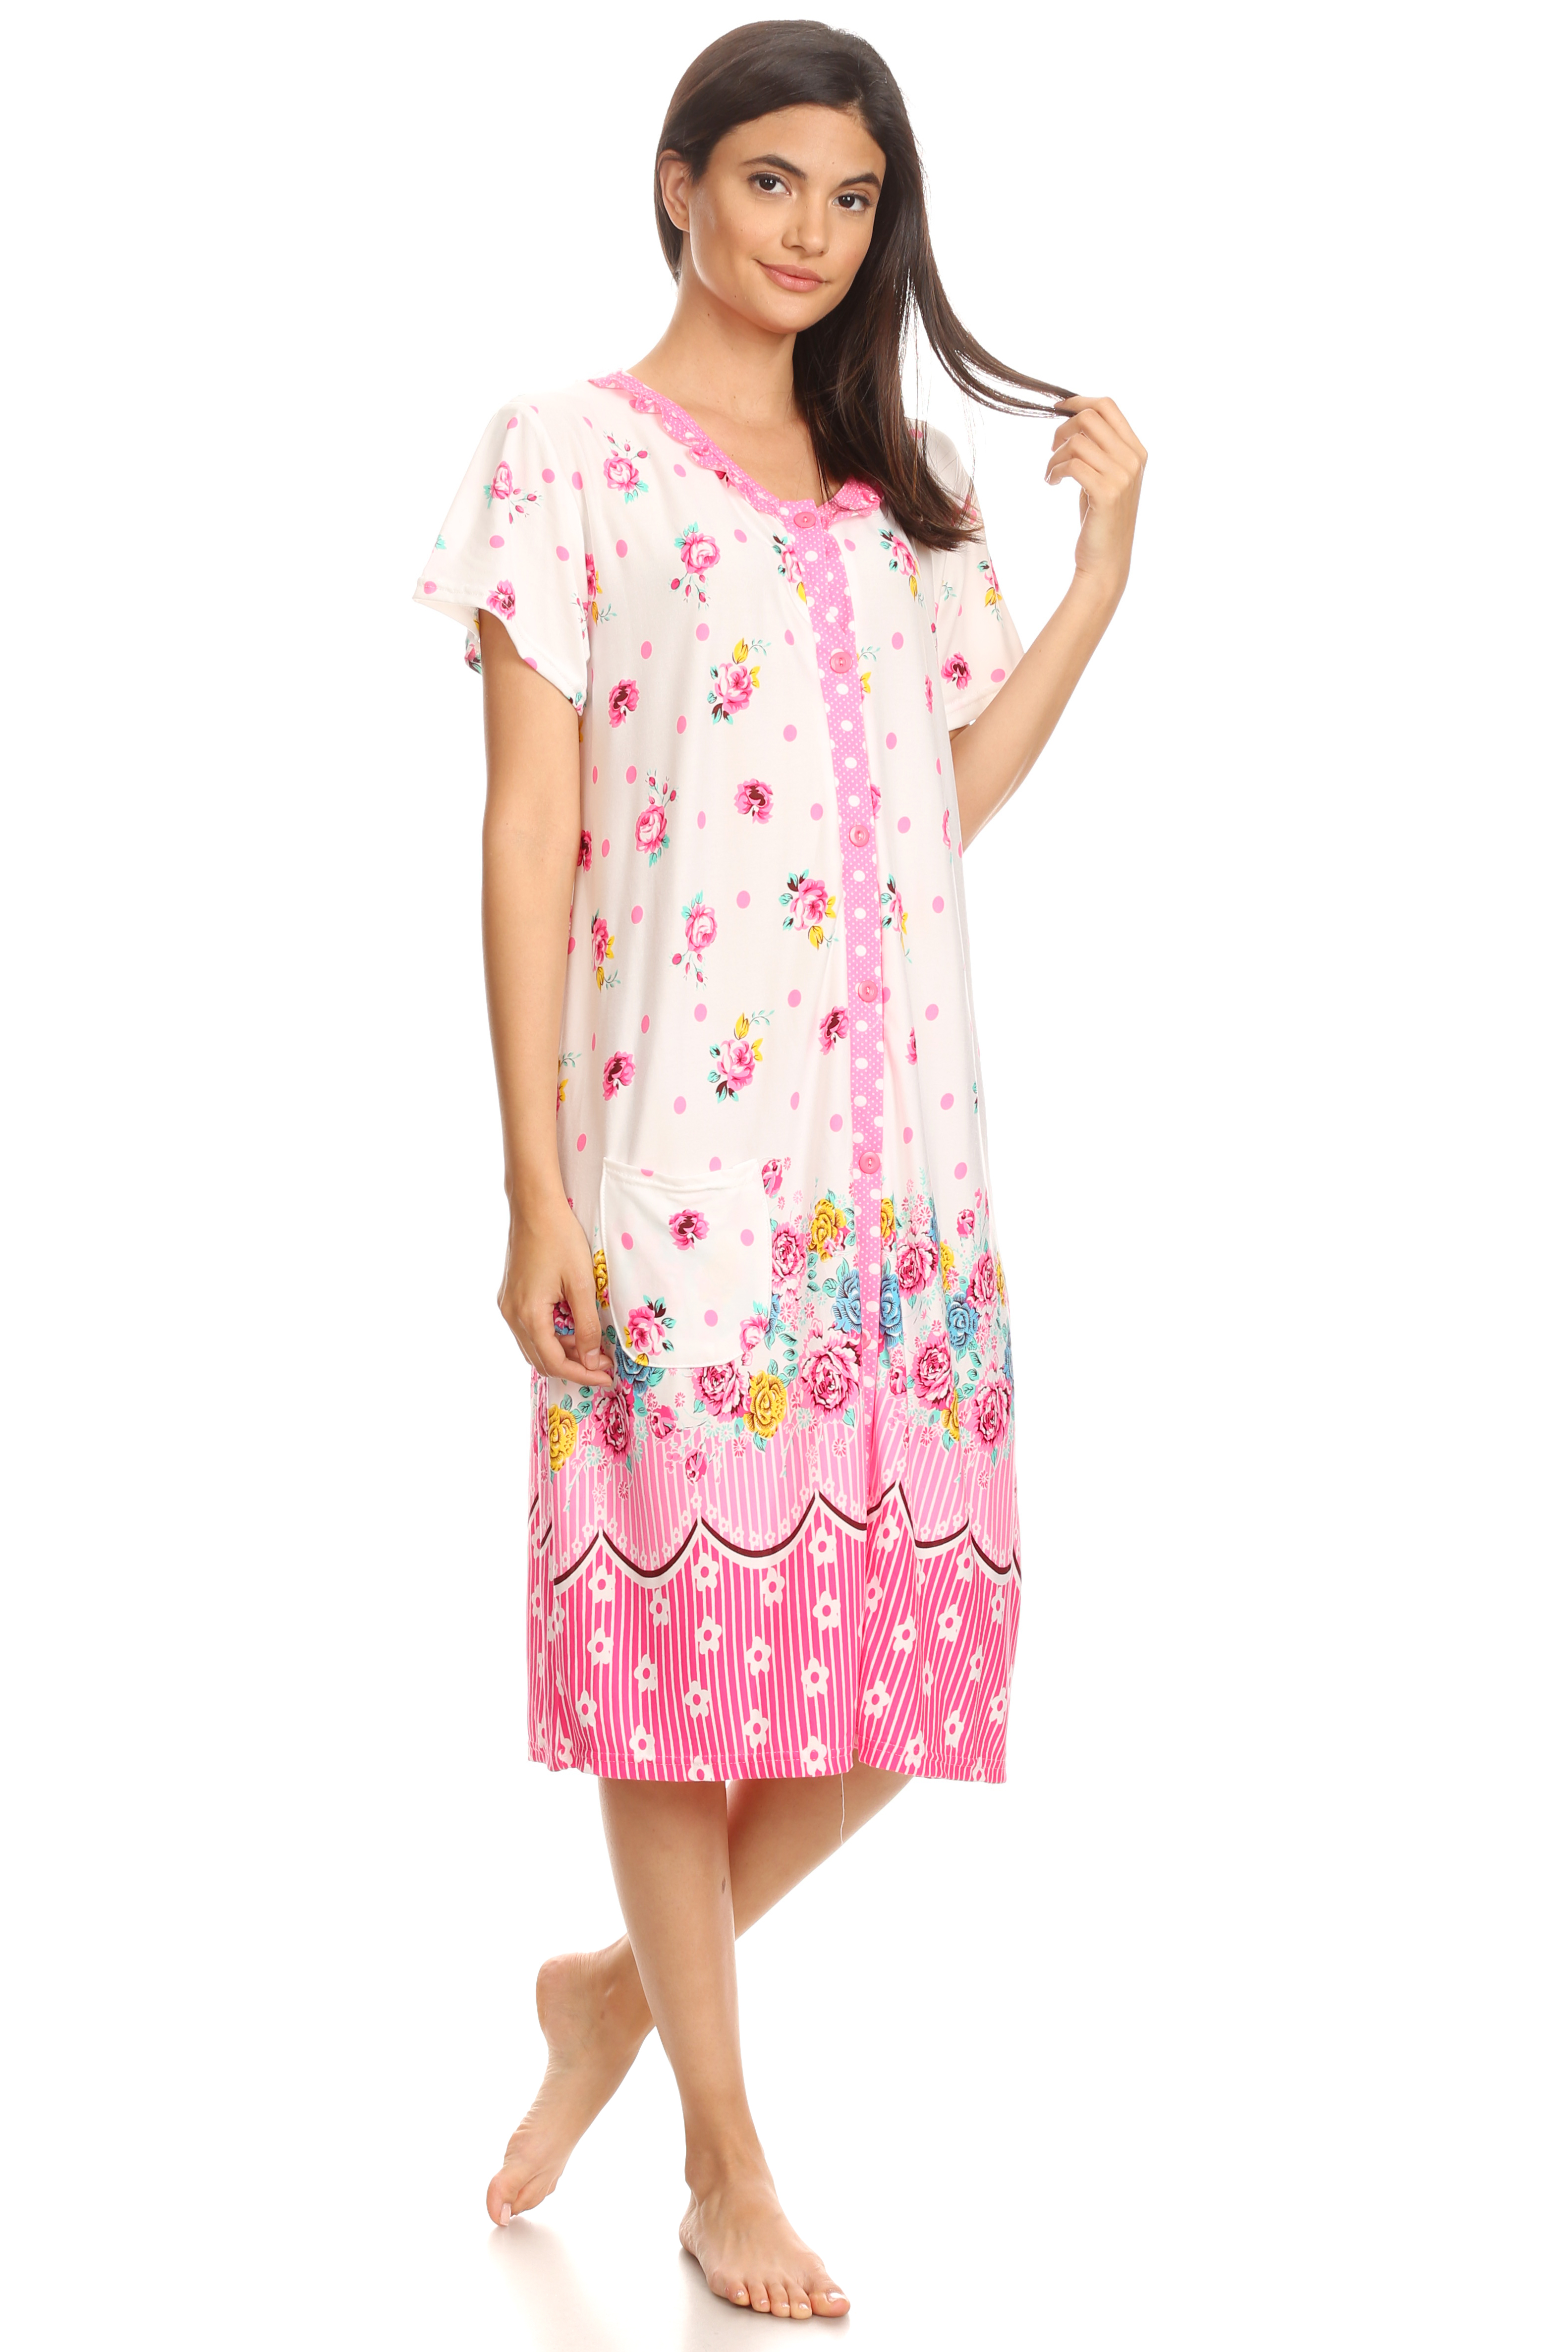 for My Mom Breast Cancer Awareness Nightshirt for Women Comfort Nightwear Soft Nightgown Short-Sleeve Fashion Print